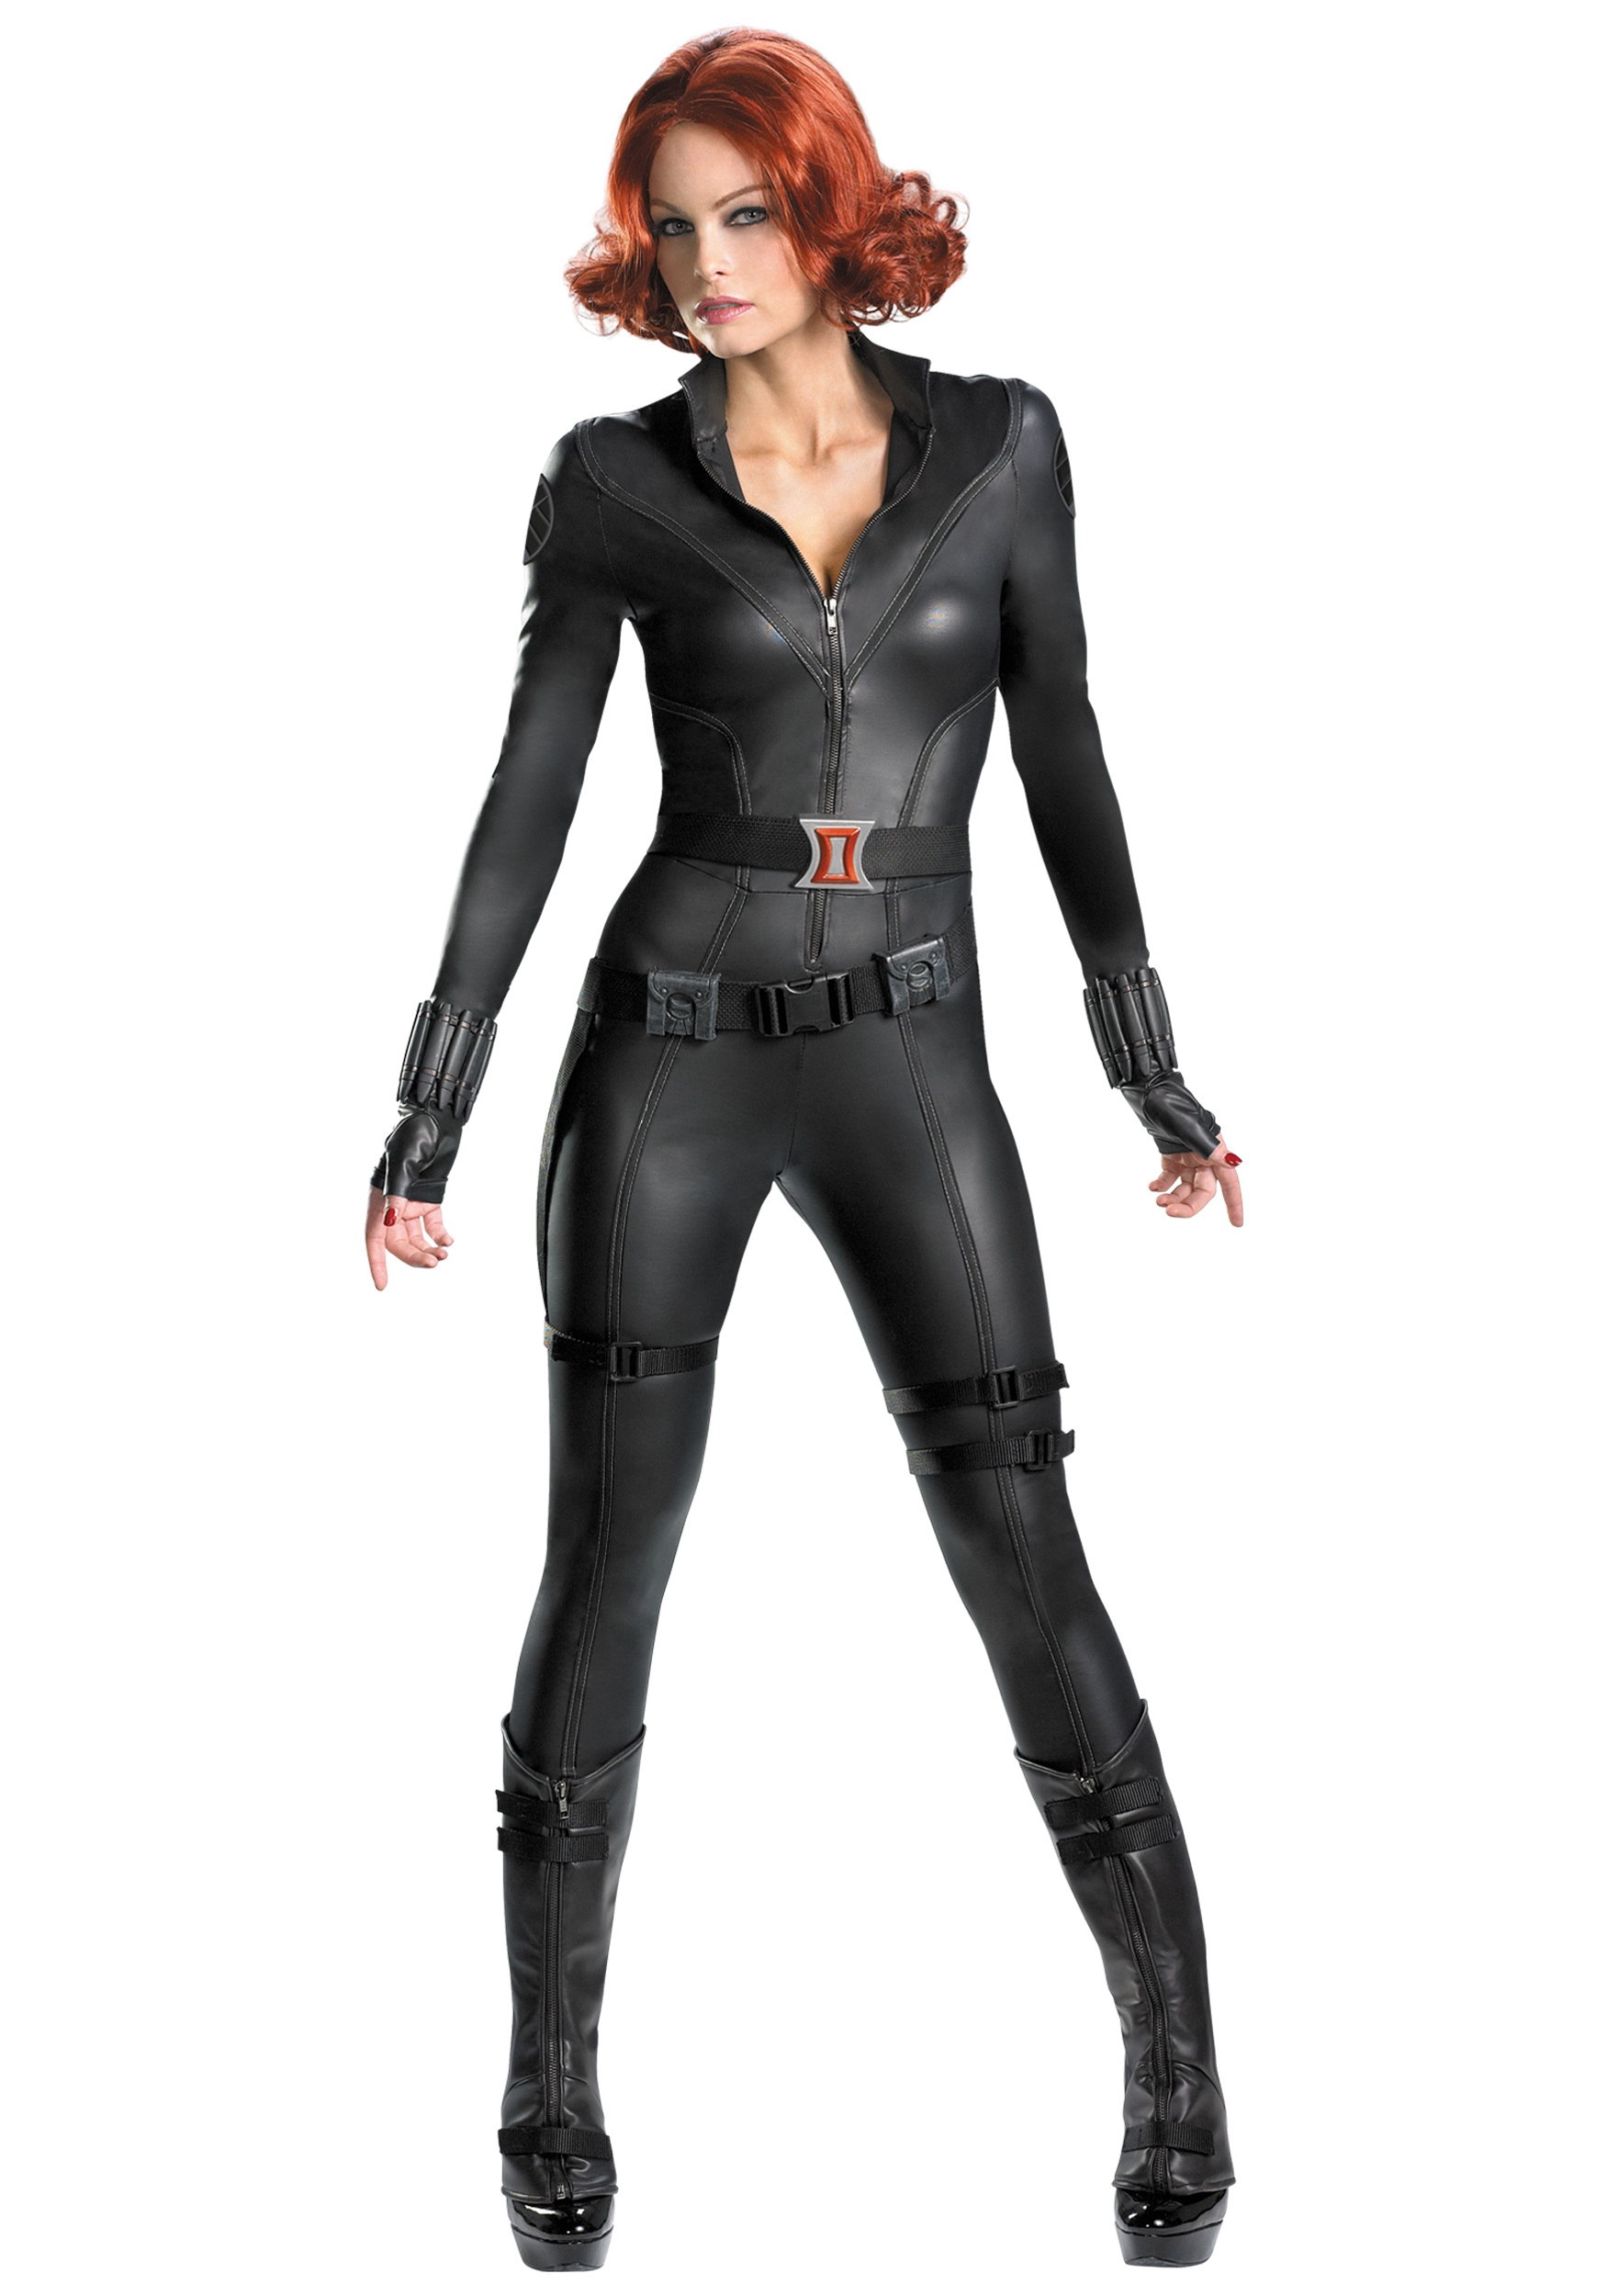 Replica Avengers Black Widow